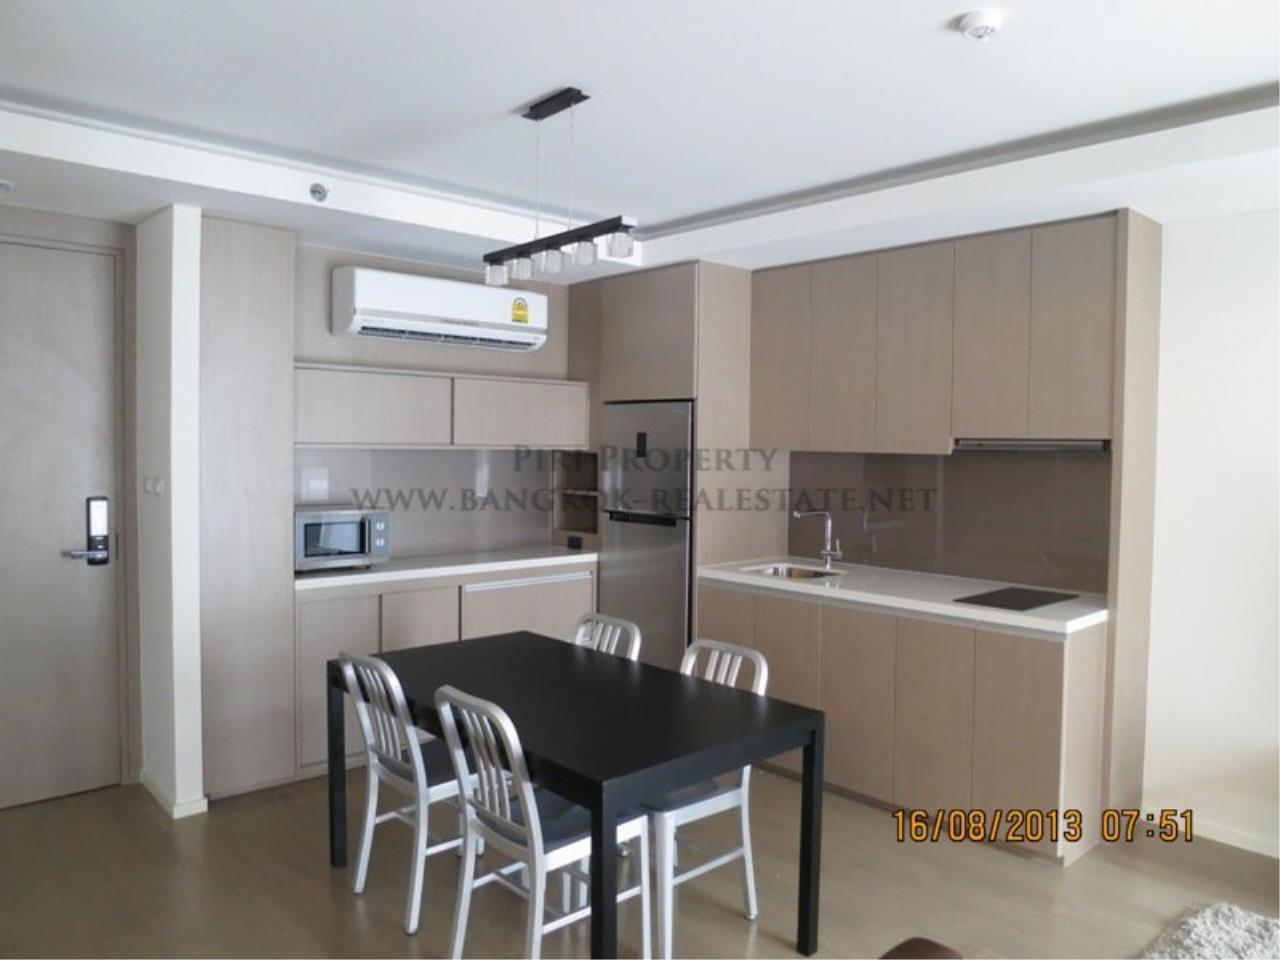 Piri Property Agency's Mode 61 - Exclusive 1 Bedroom Condo in Ekkamai near Park Lane 5